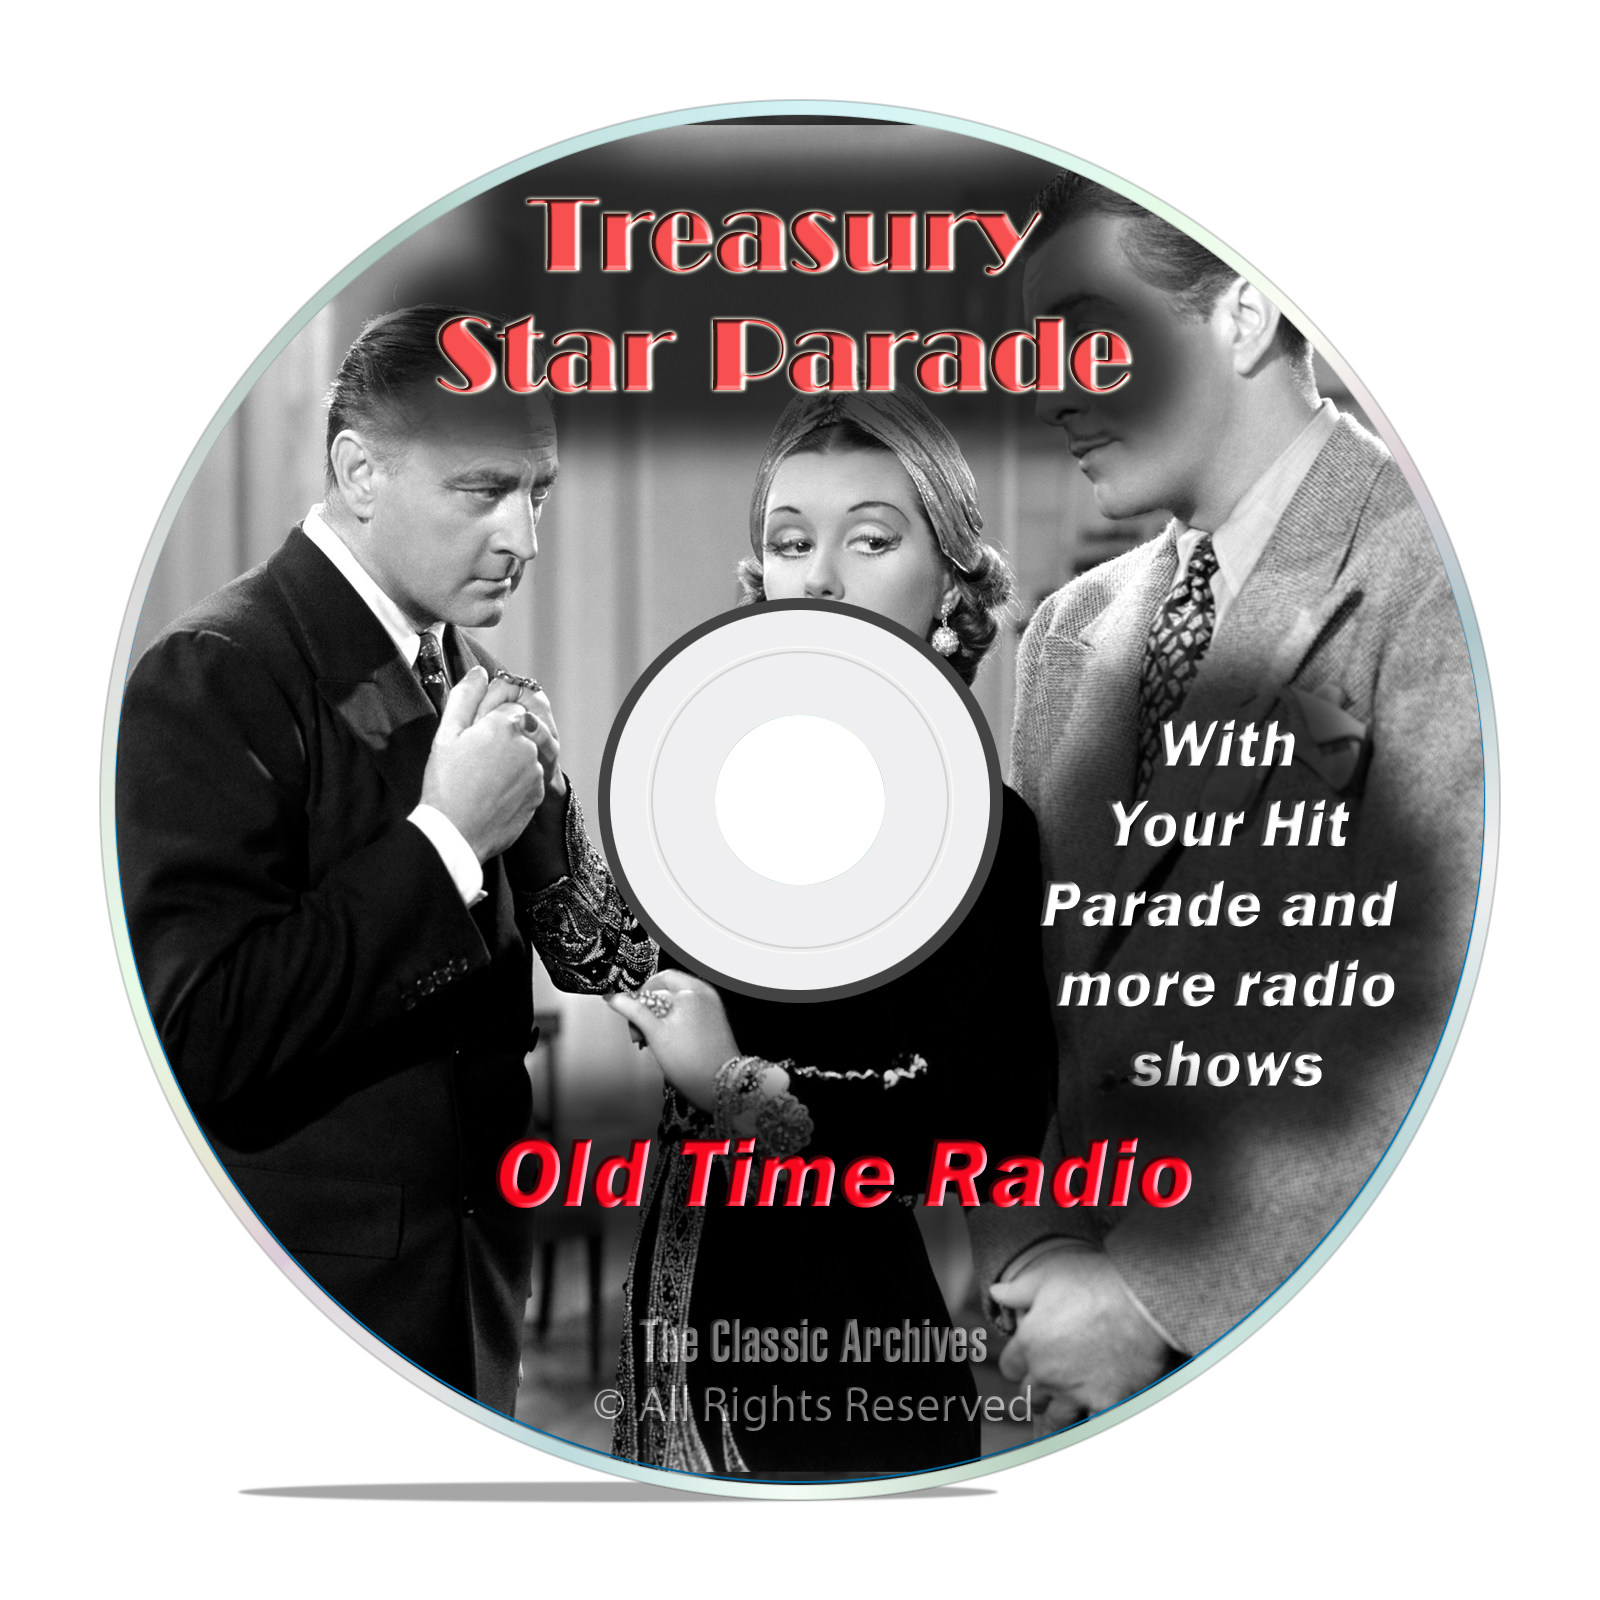 Treasury Star Parade, 997 Old Time Radio Music, Country, Western Shows DVD - Click Image to Close